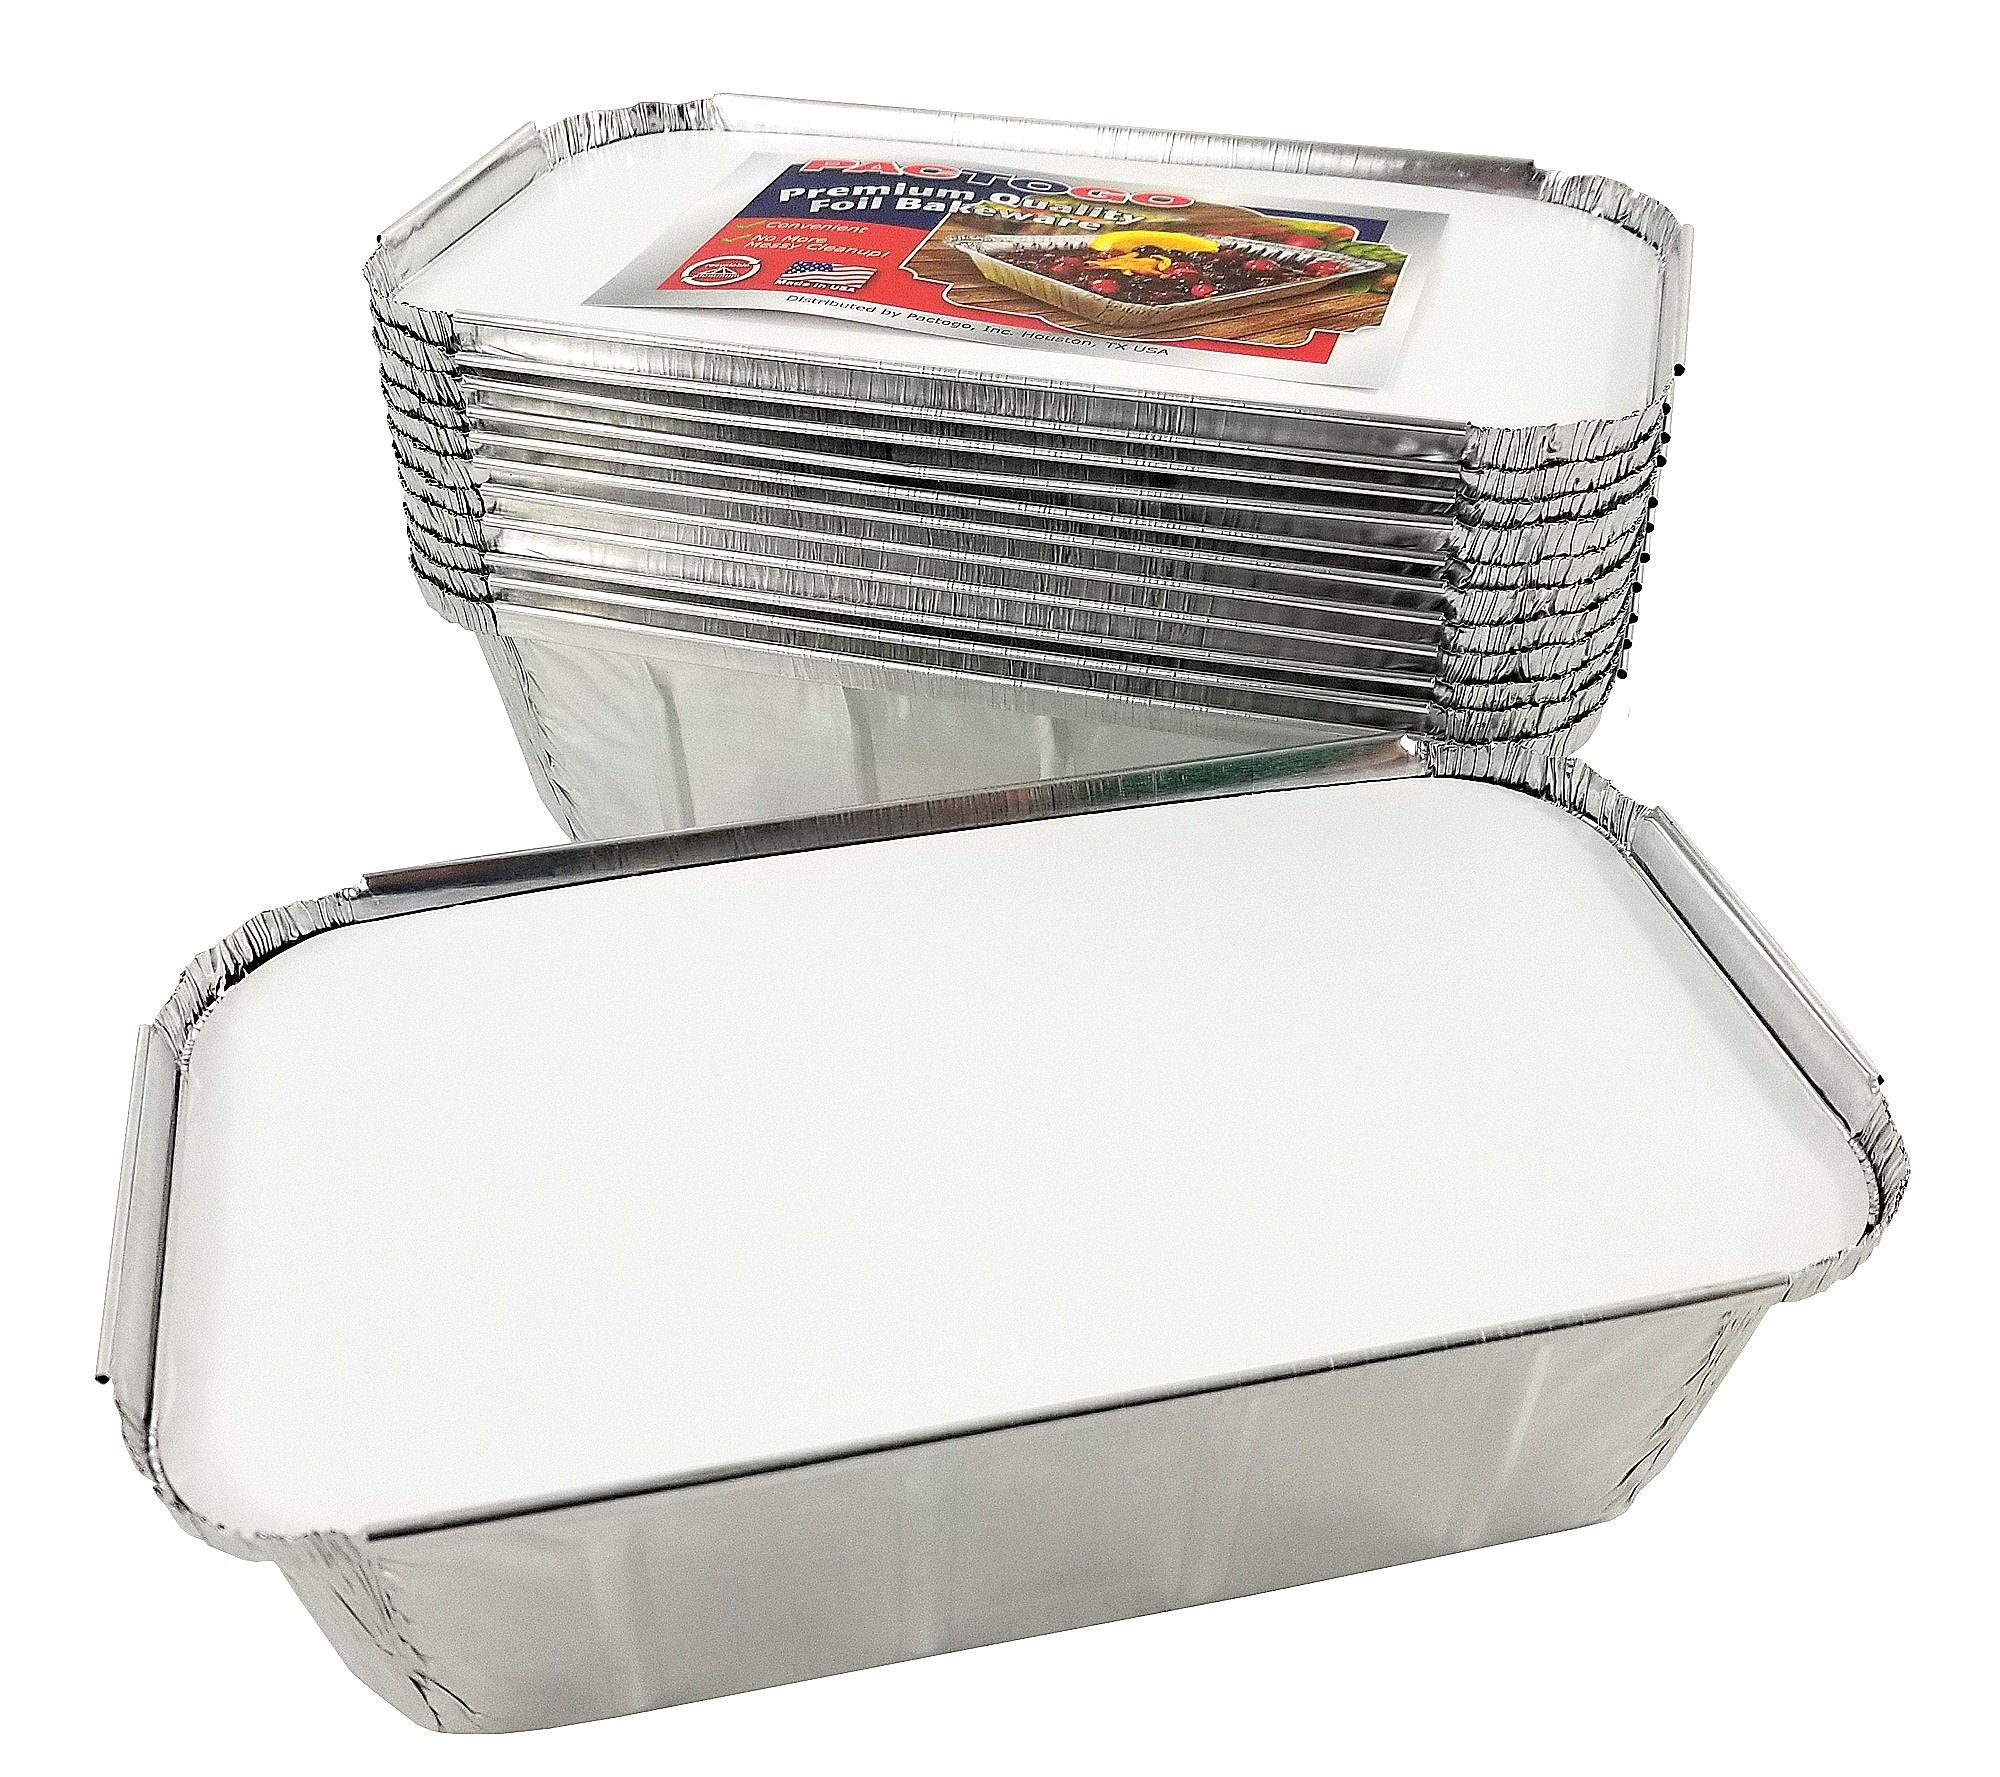 Pactogo 1 1/2 lb. IVC Disposable Aluminum Foil Loaf Bread Pan w/Board Lid (8'' x 4.1'' x 2.2'') - Heavy Duty Made in USA (Pack of 50 Sets) by PACTOGO (Image #7)